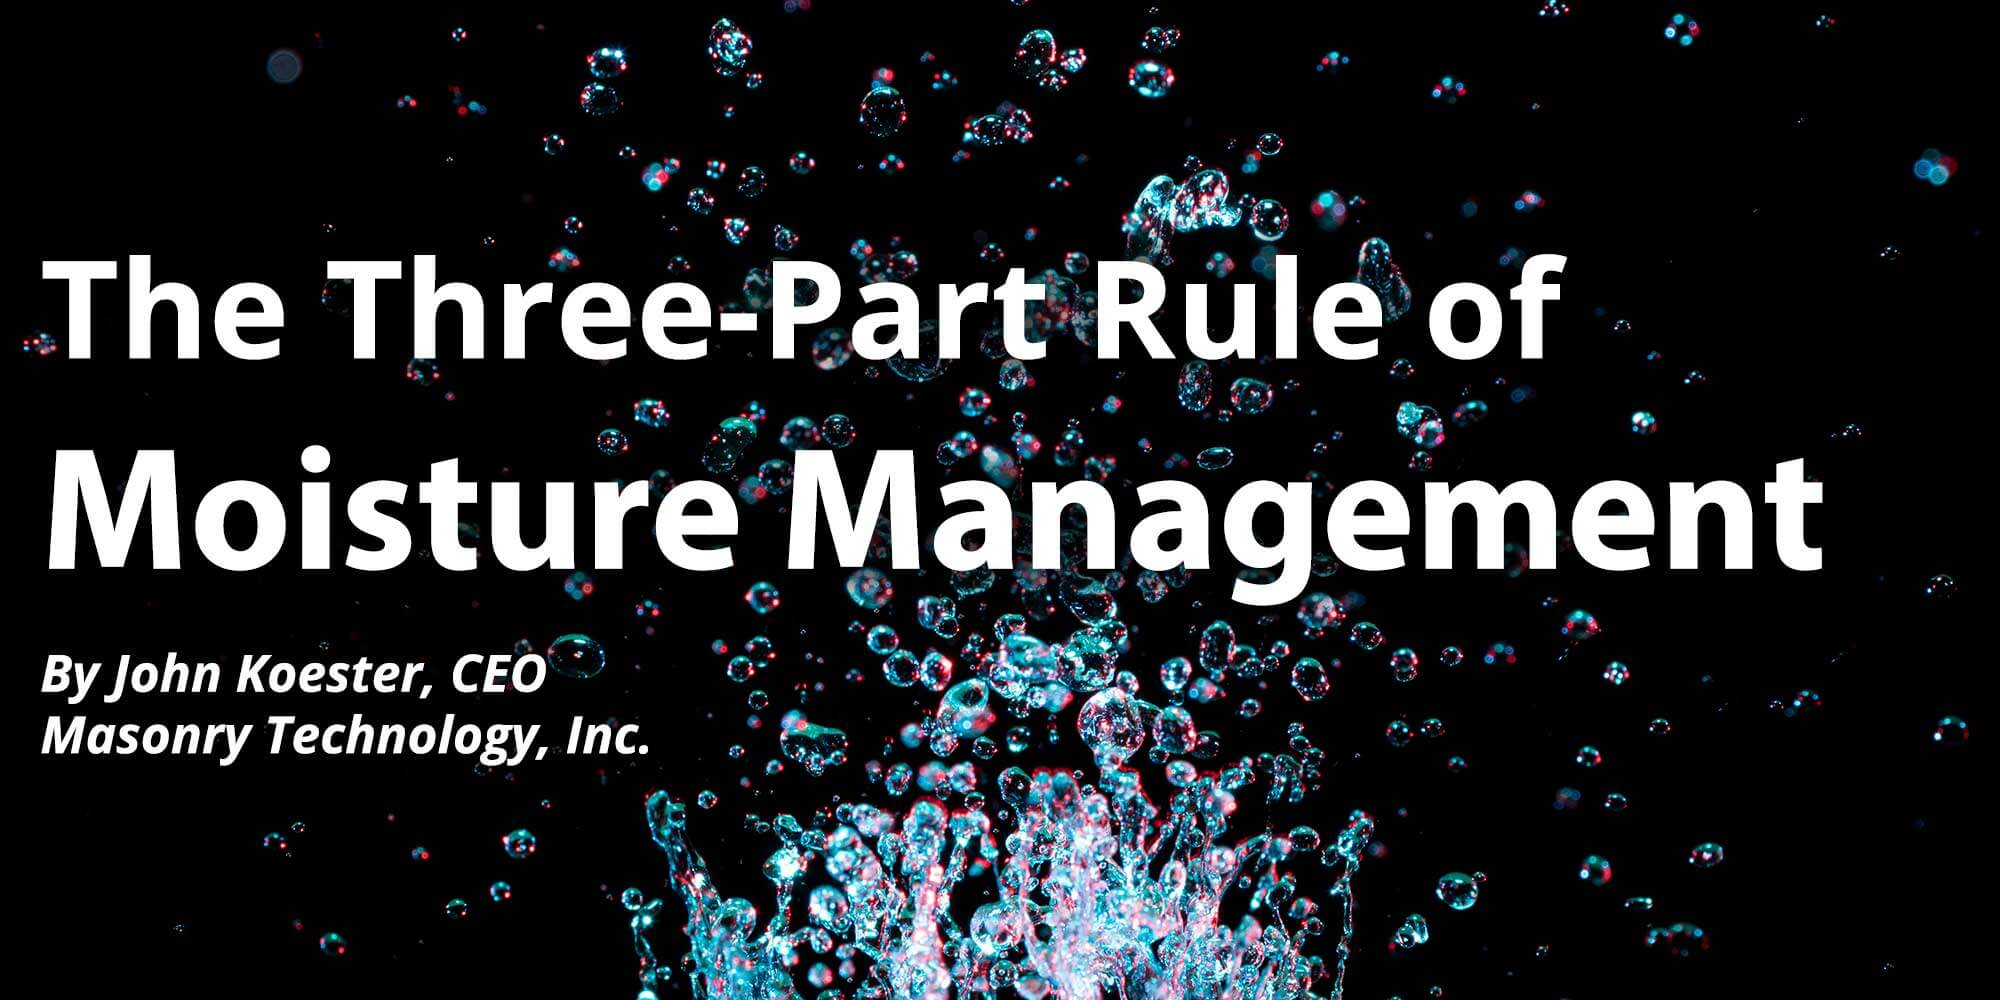 Three-Part Rule of Moisture Management